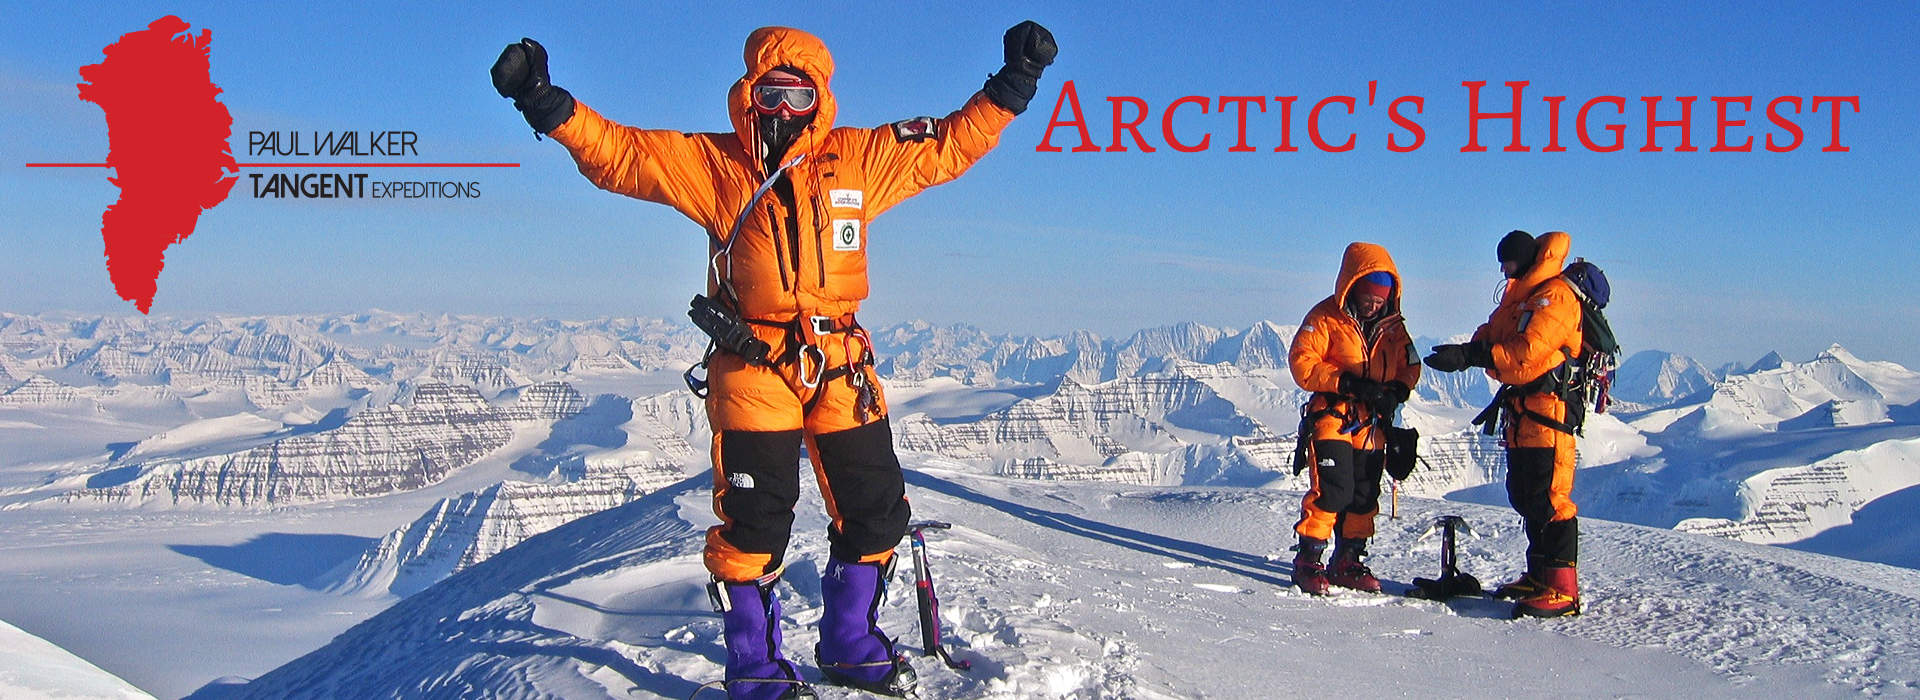 Arctic's Highest